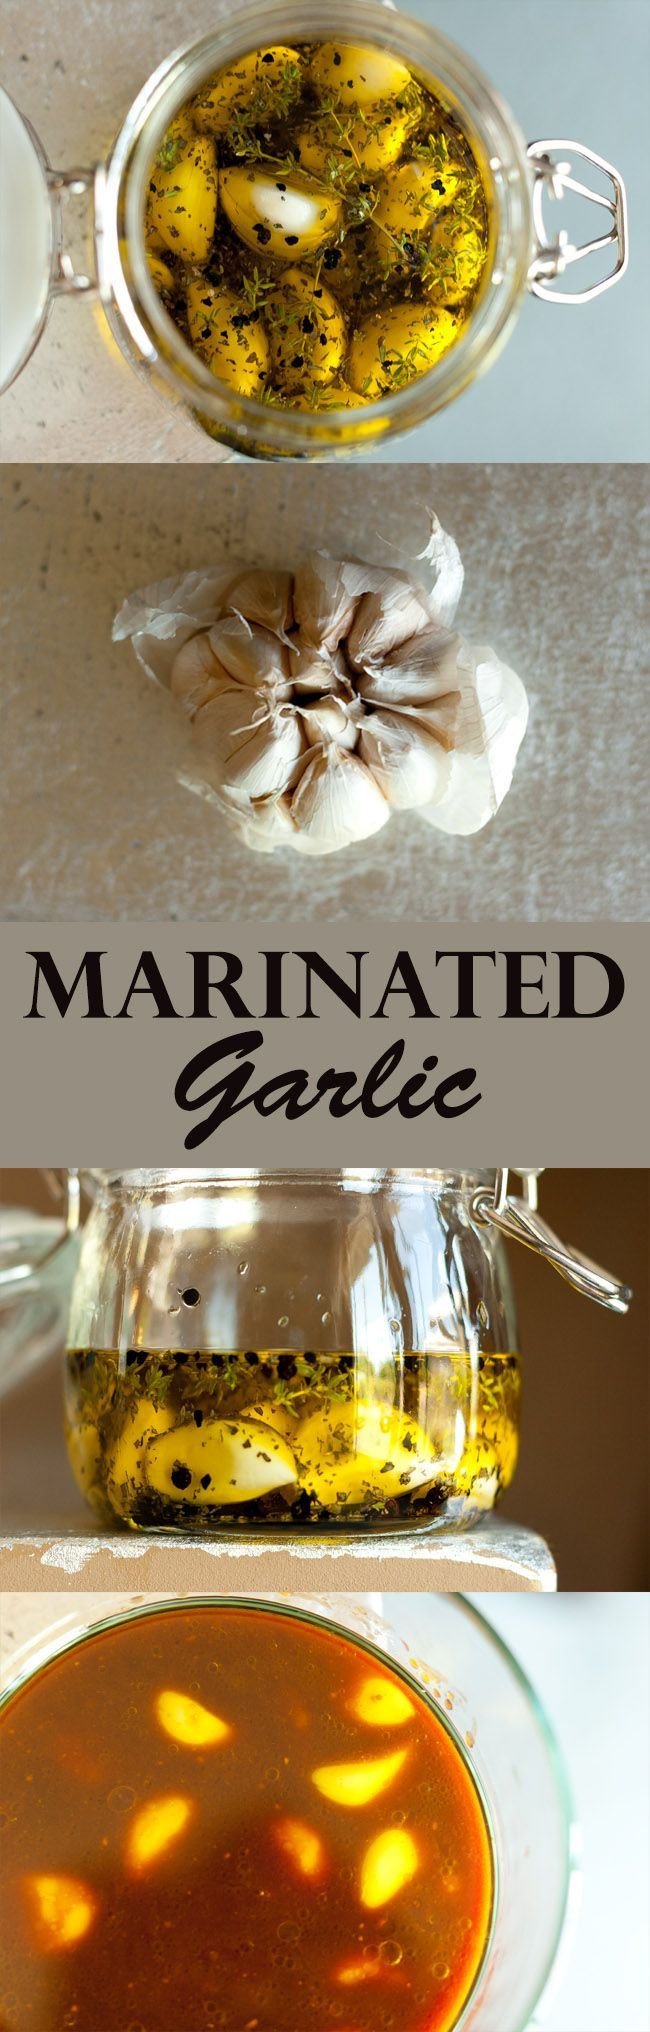 Marinated Garlic… two ways! Herb & Spice Marinated Garlic and Japanese-style Soy-Miso Marinated Garlic